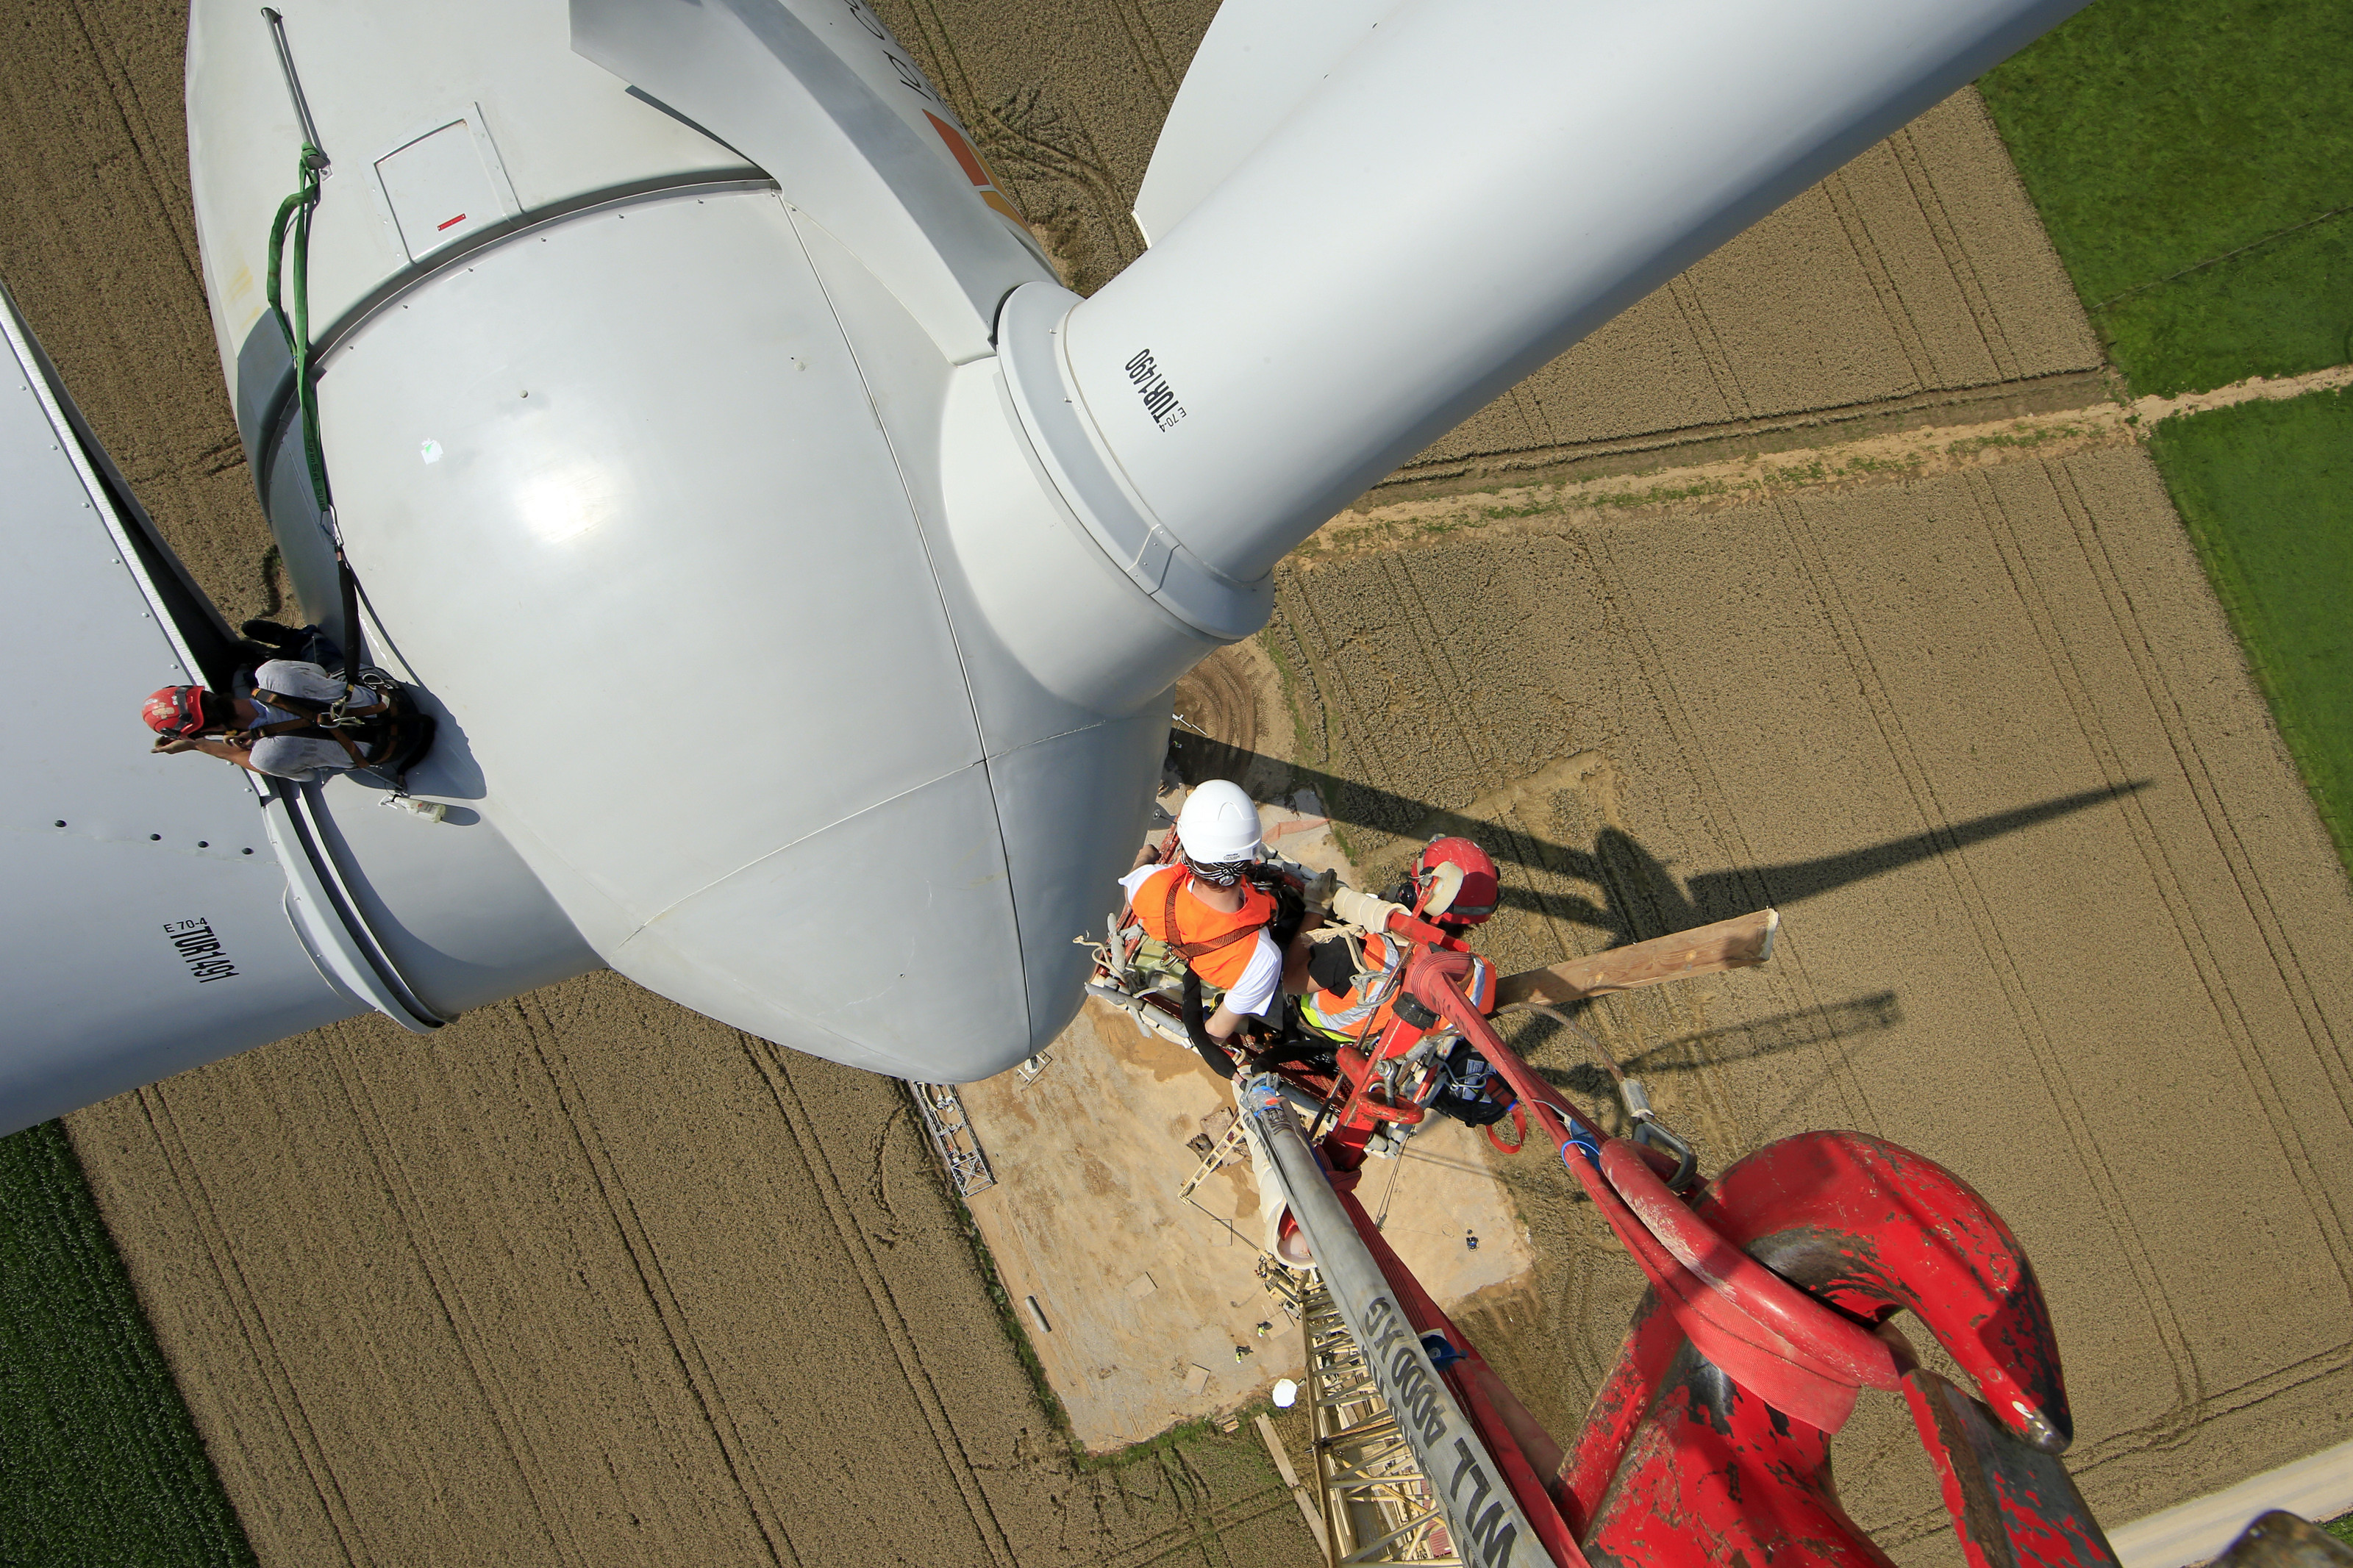 Employees work on a crane above an E-70 wind turbine manufactured by German company Enercon for La Compagnie du Vent (GDF SUEZ Group) during its installation at a wind farm in Meneslies, Picardie region, July 31, 2014. France announced in July a package of tax breaks and low-cost loans to improve insulation in buildings and boost investment in renewable energy, which is supposed to provide 40 percent of the country's electricity by 2030. Picture taken July  31, 2014.  REUTERS/Benoit Tessier   (FRANCE - Tags: ENERGY BUSINESS CONSTRUCTION ENVIRONMENT) - PM1EA841ETF01